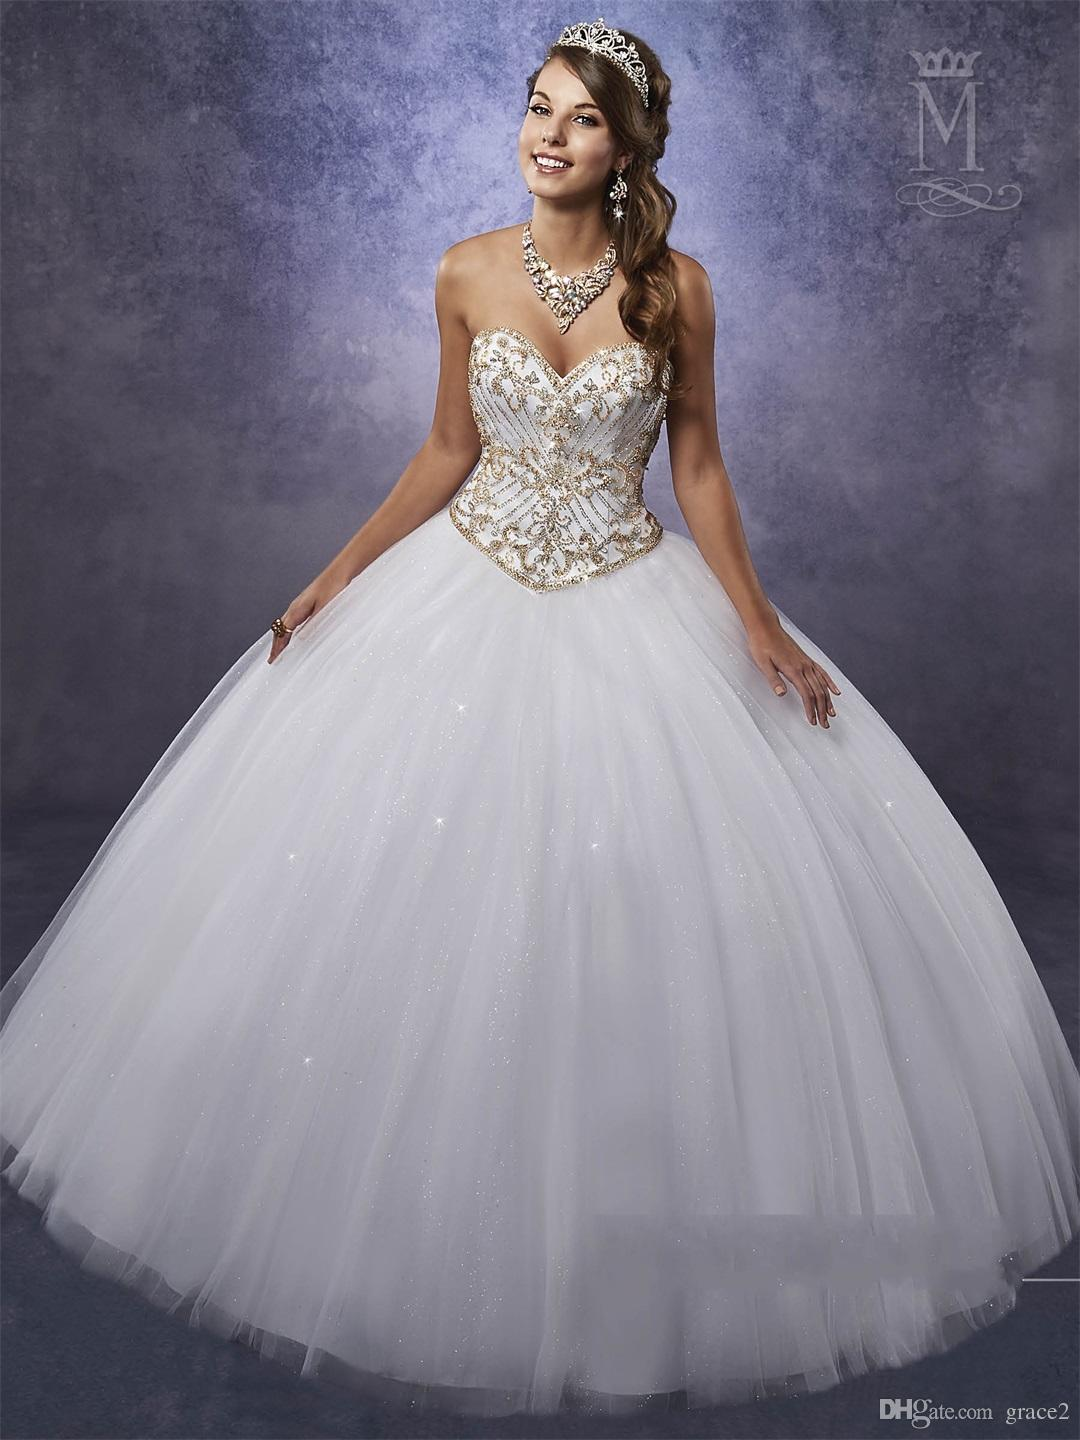 White Quinceanera Dresses 2017 Mary's with Gold Beads ...